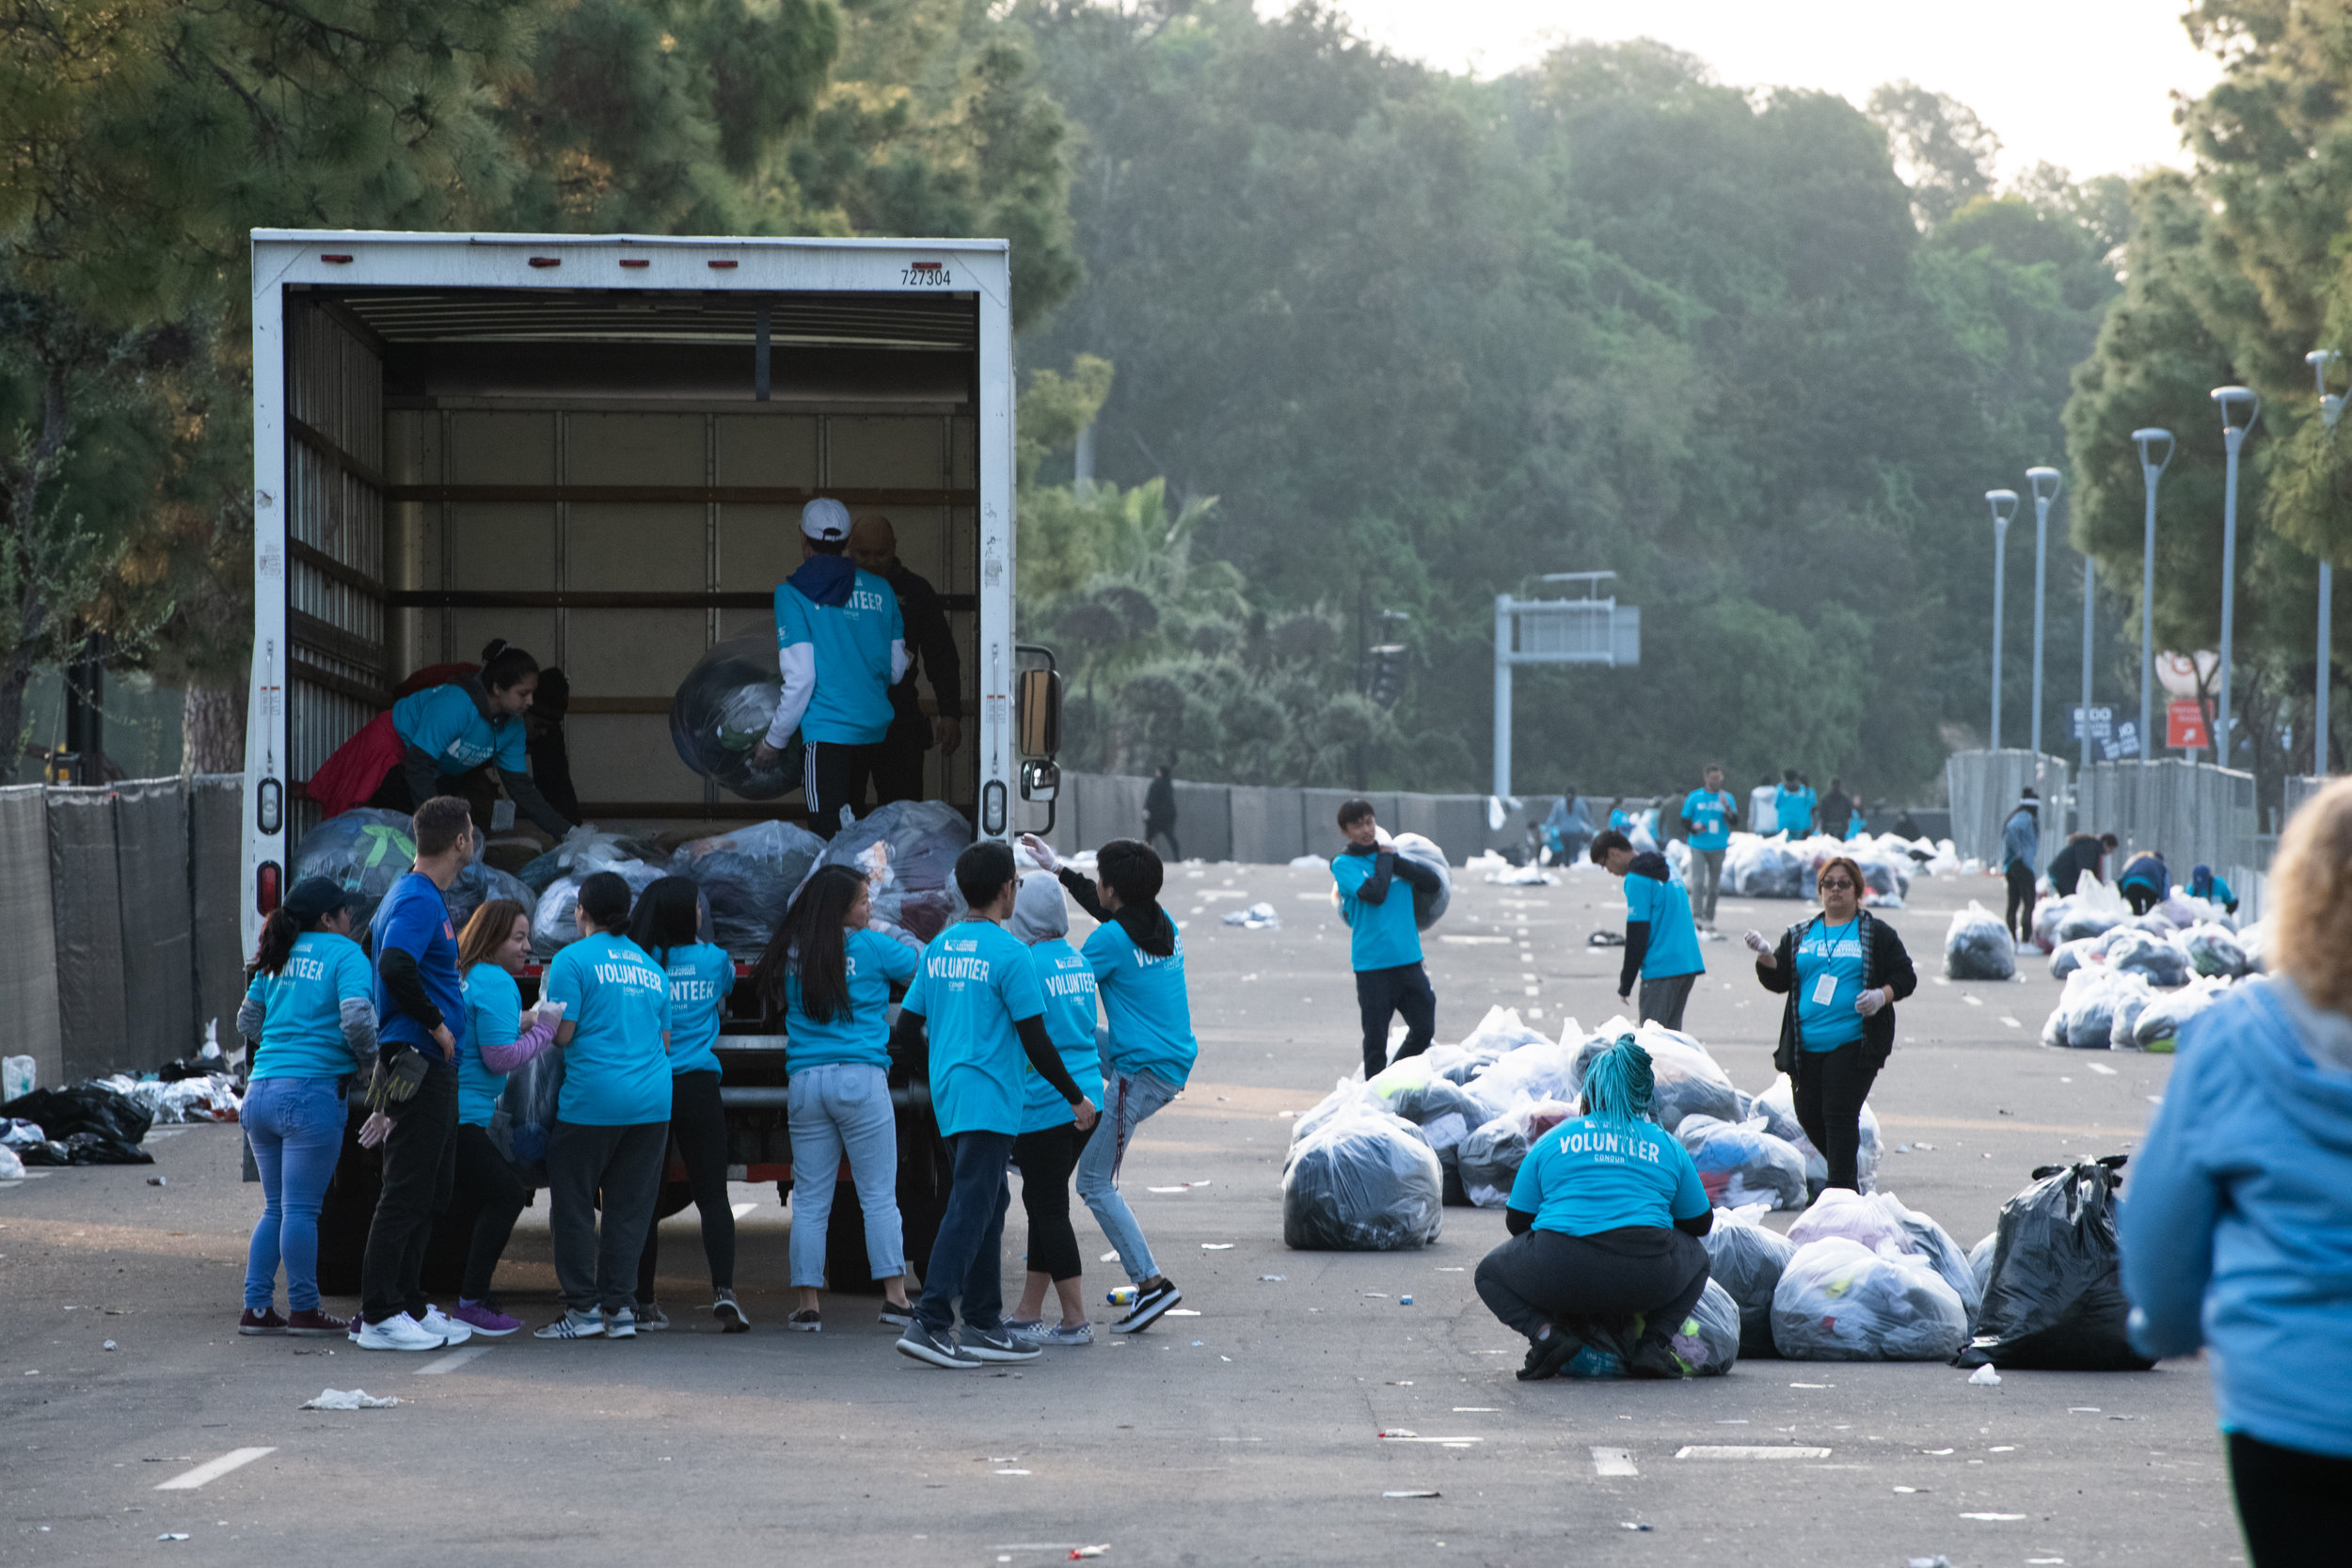 Volunteers for the 34th Los Angeles Marathon gather up items of clothing thrown off by participants near the starting line, Sunday morning, March 24, 2019, at Dodger Stadium in Los Angeles, Calif. The items are put into large bags that are then donated to Goodwill.